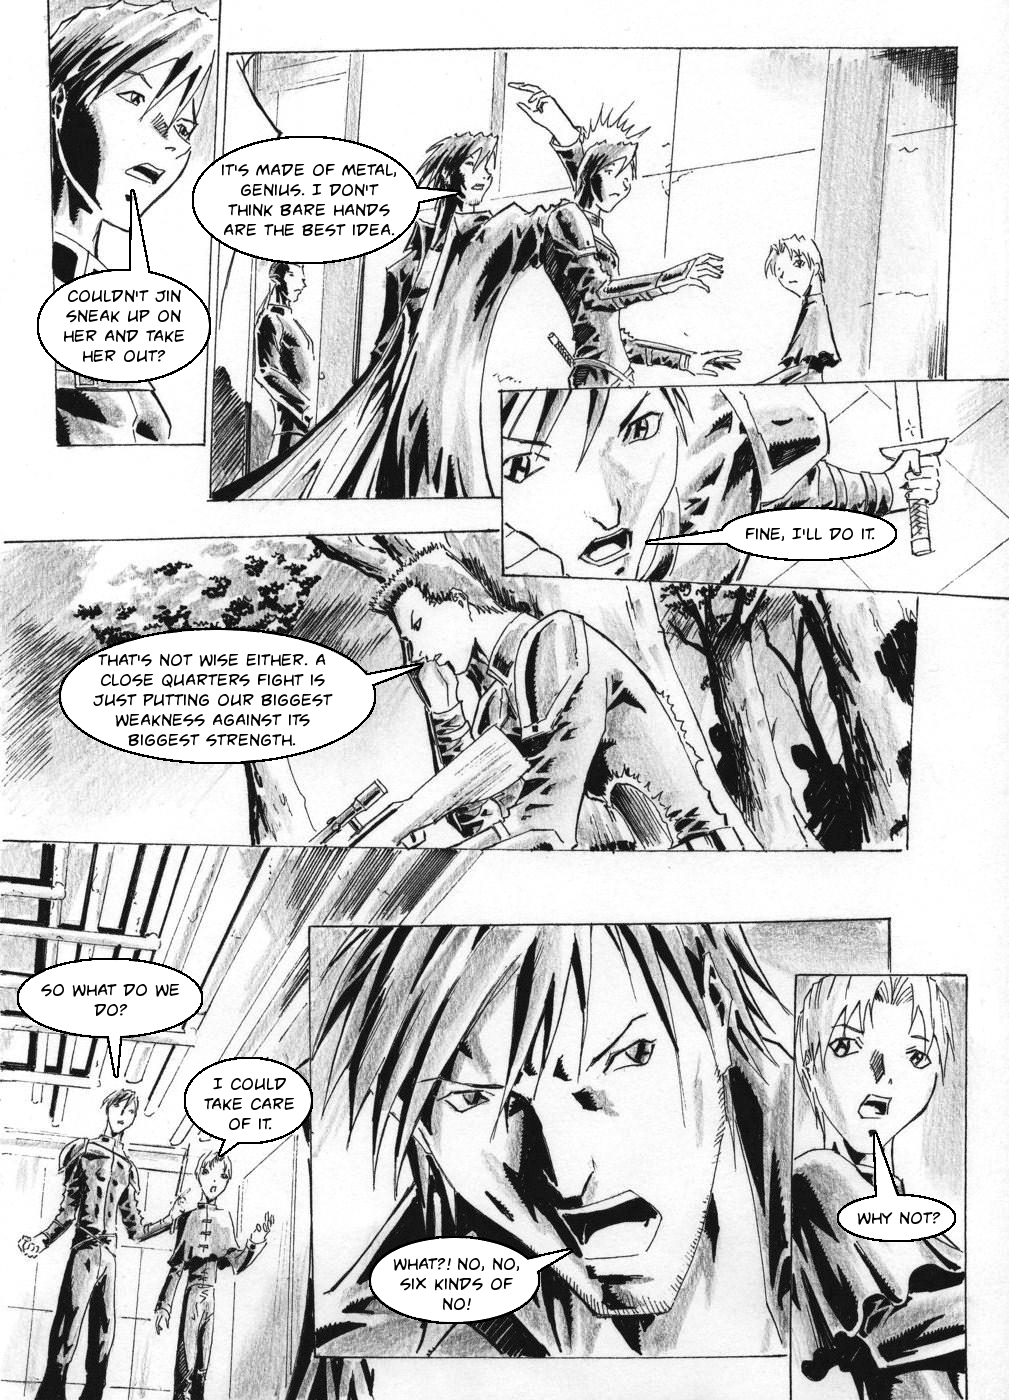 Zokusho: Heavy Metal&#8211;Page 6